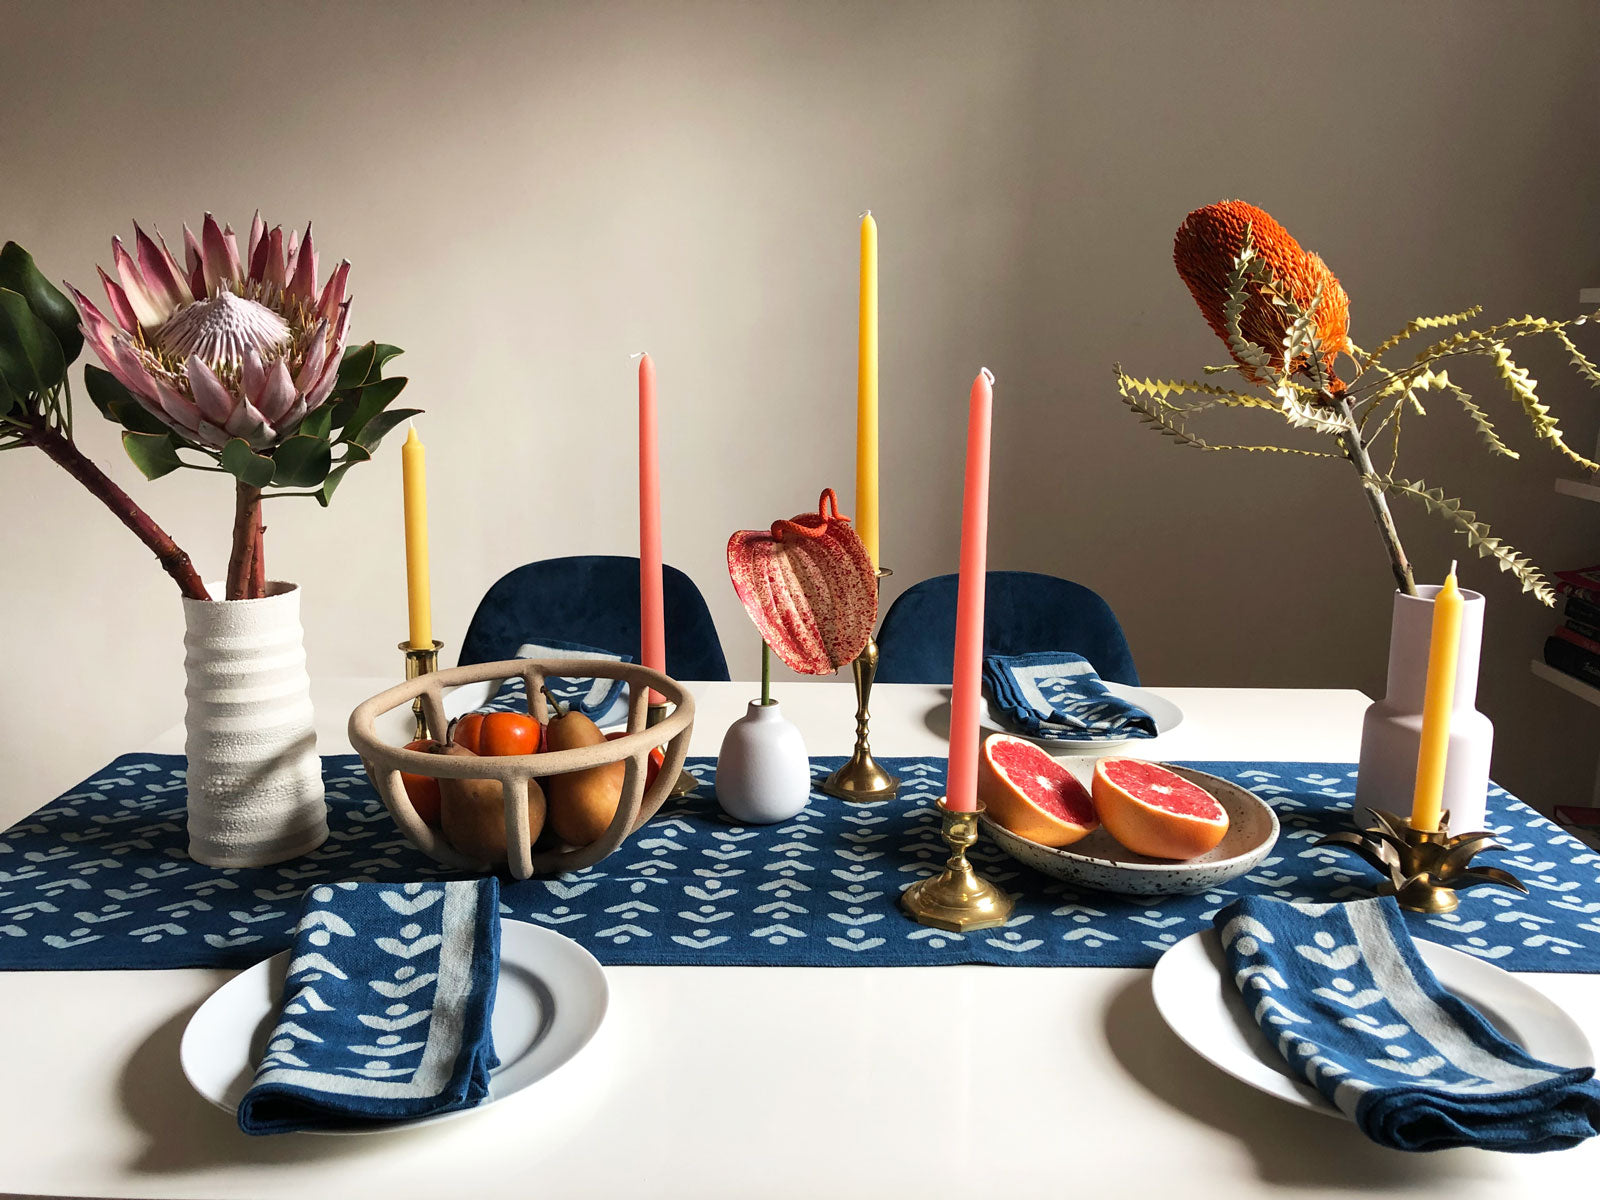 Upgrade your table top decor with SUNDAY/MONDAY's Egret table runner. It's hand block printed with mud resist and dyed with natural indigo. Adds a cheery elegance to any dining space.